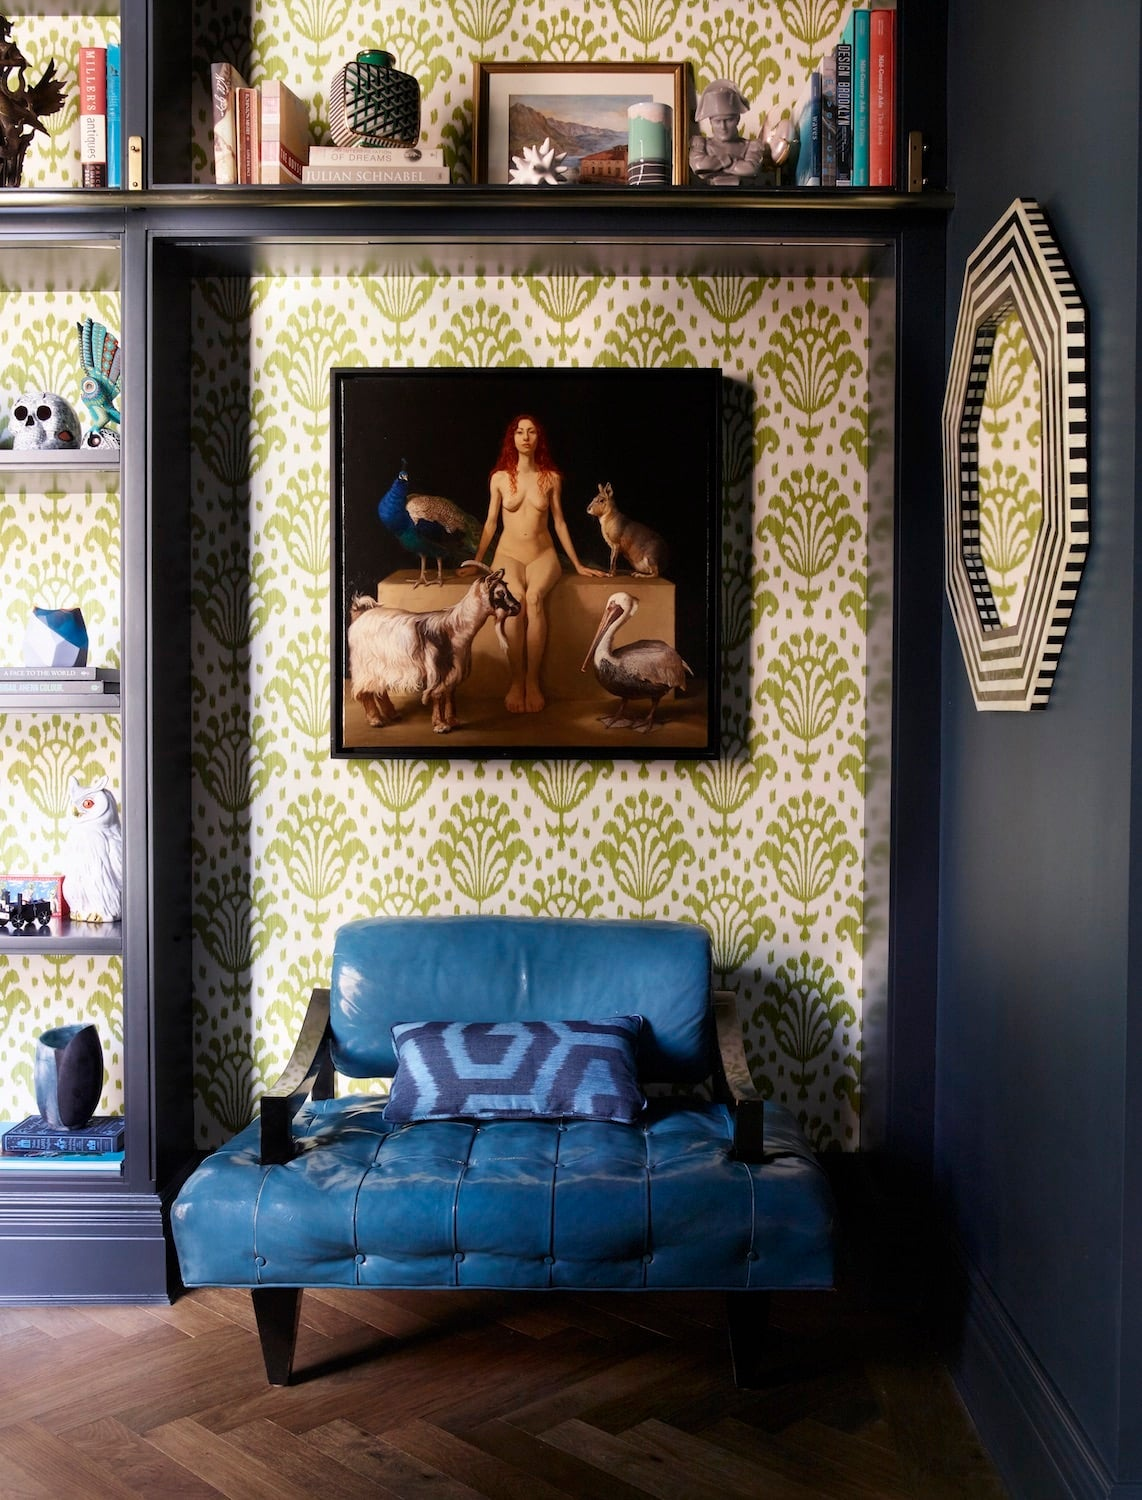 Farrow and Ball's Hague Blue, used by Rebekah Caudwell